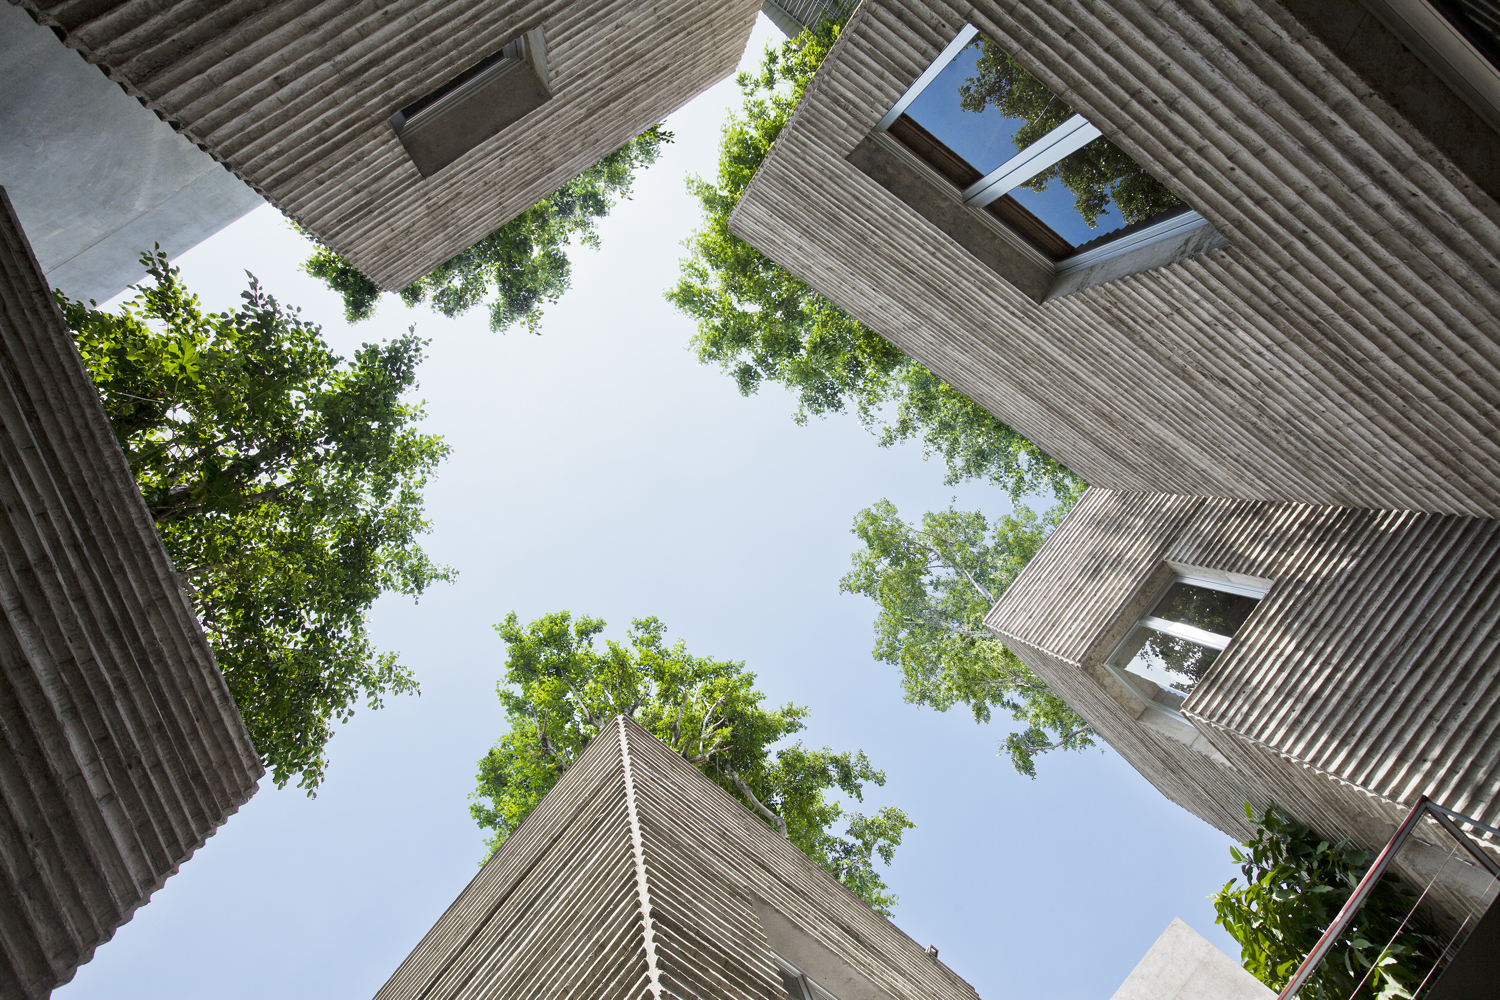 House for Trees / Vo Trong Nghia Architects (7)